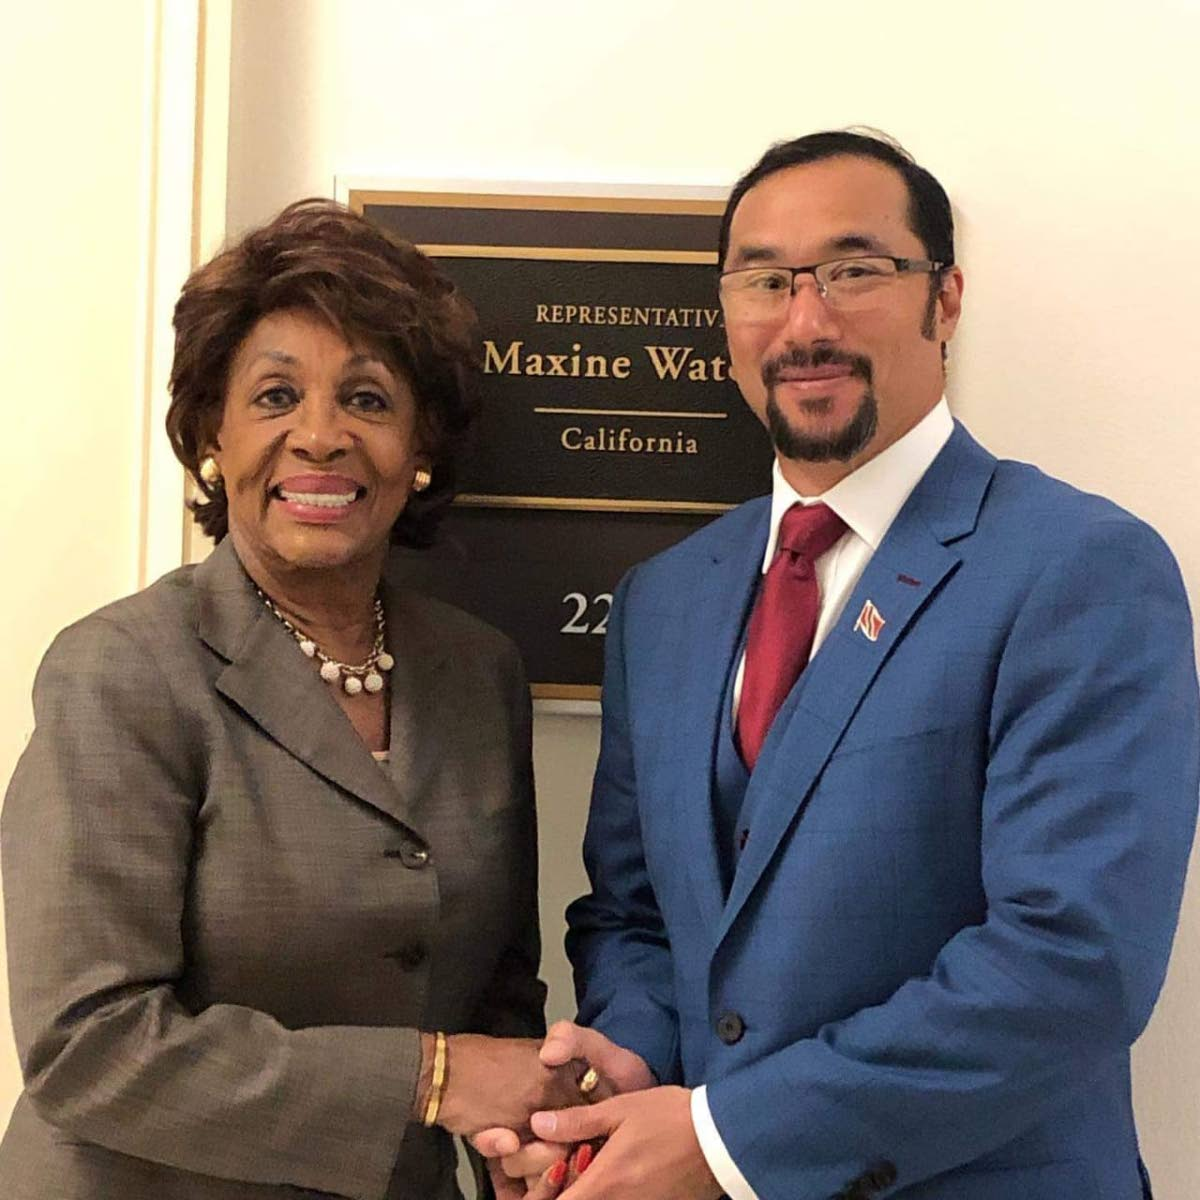 National Security Minister Stuart Young, right, meets Congresswoman Maxine Waters during a Caricom delegation visit to the US Congress on Wednesday. PHOTO COURTESY THE MINISTRY OF NATIONAL SECURITY